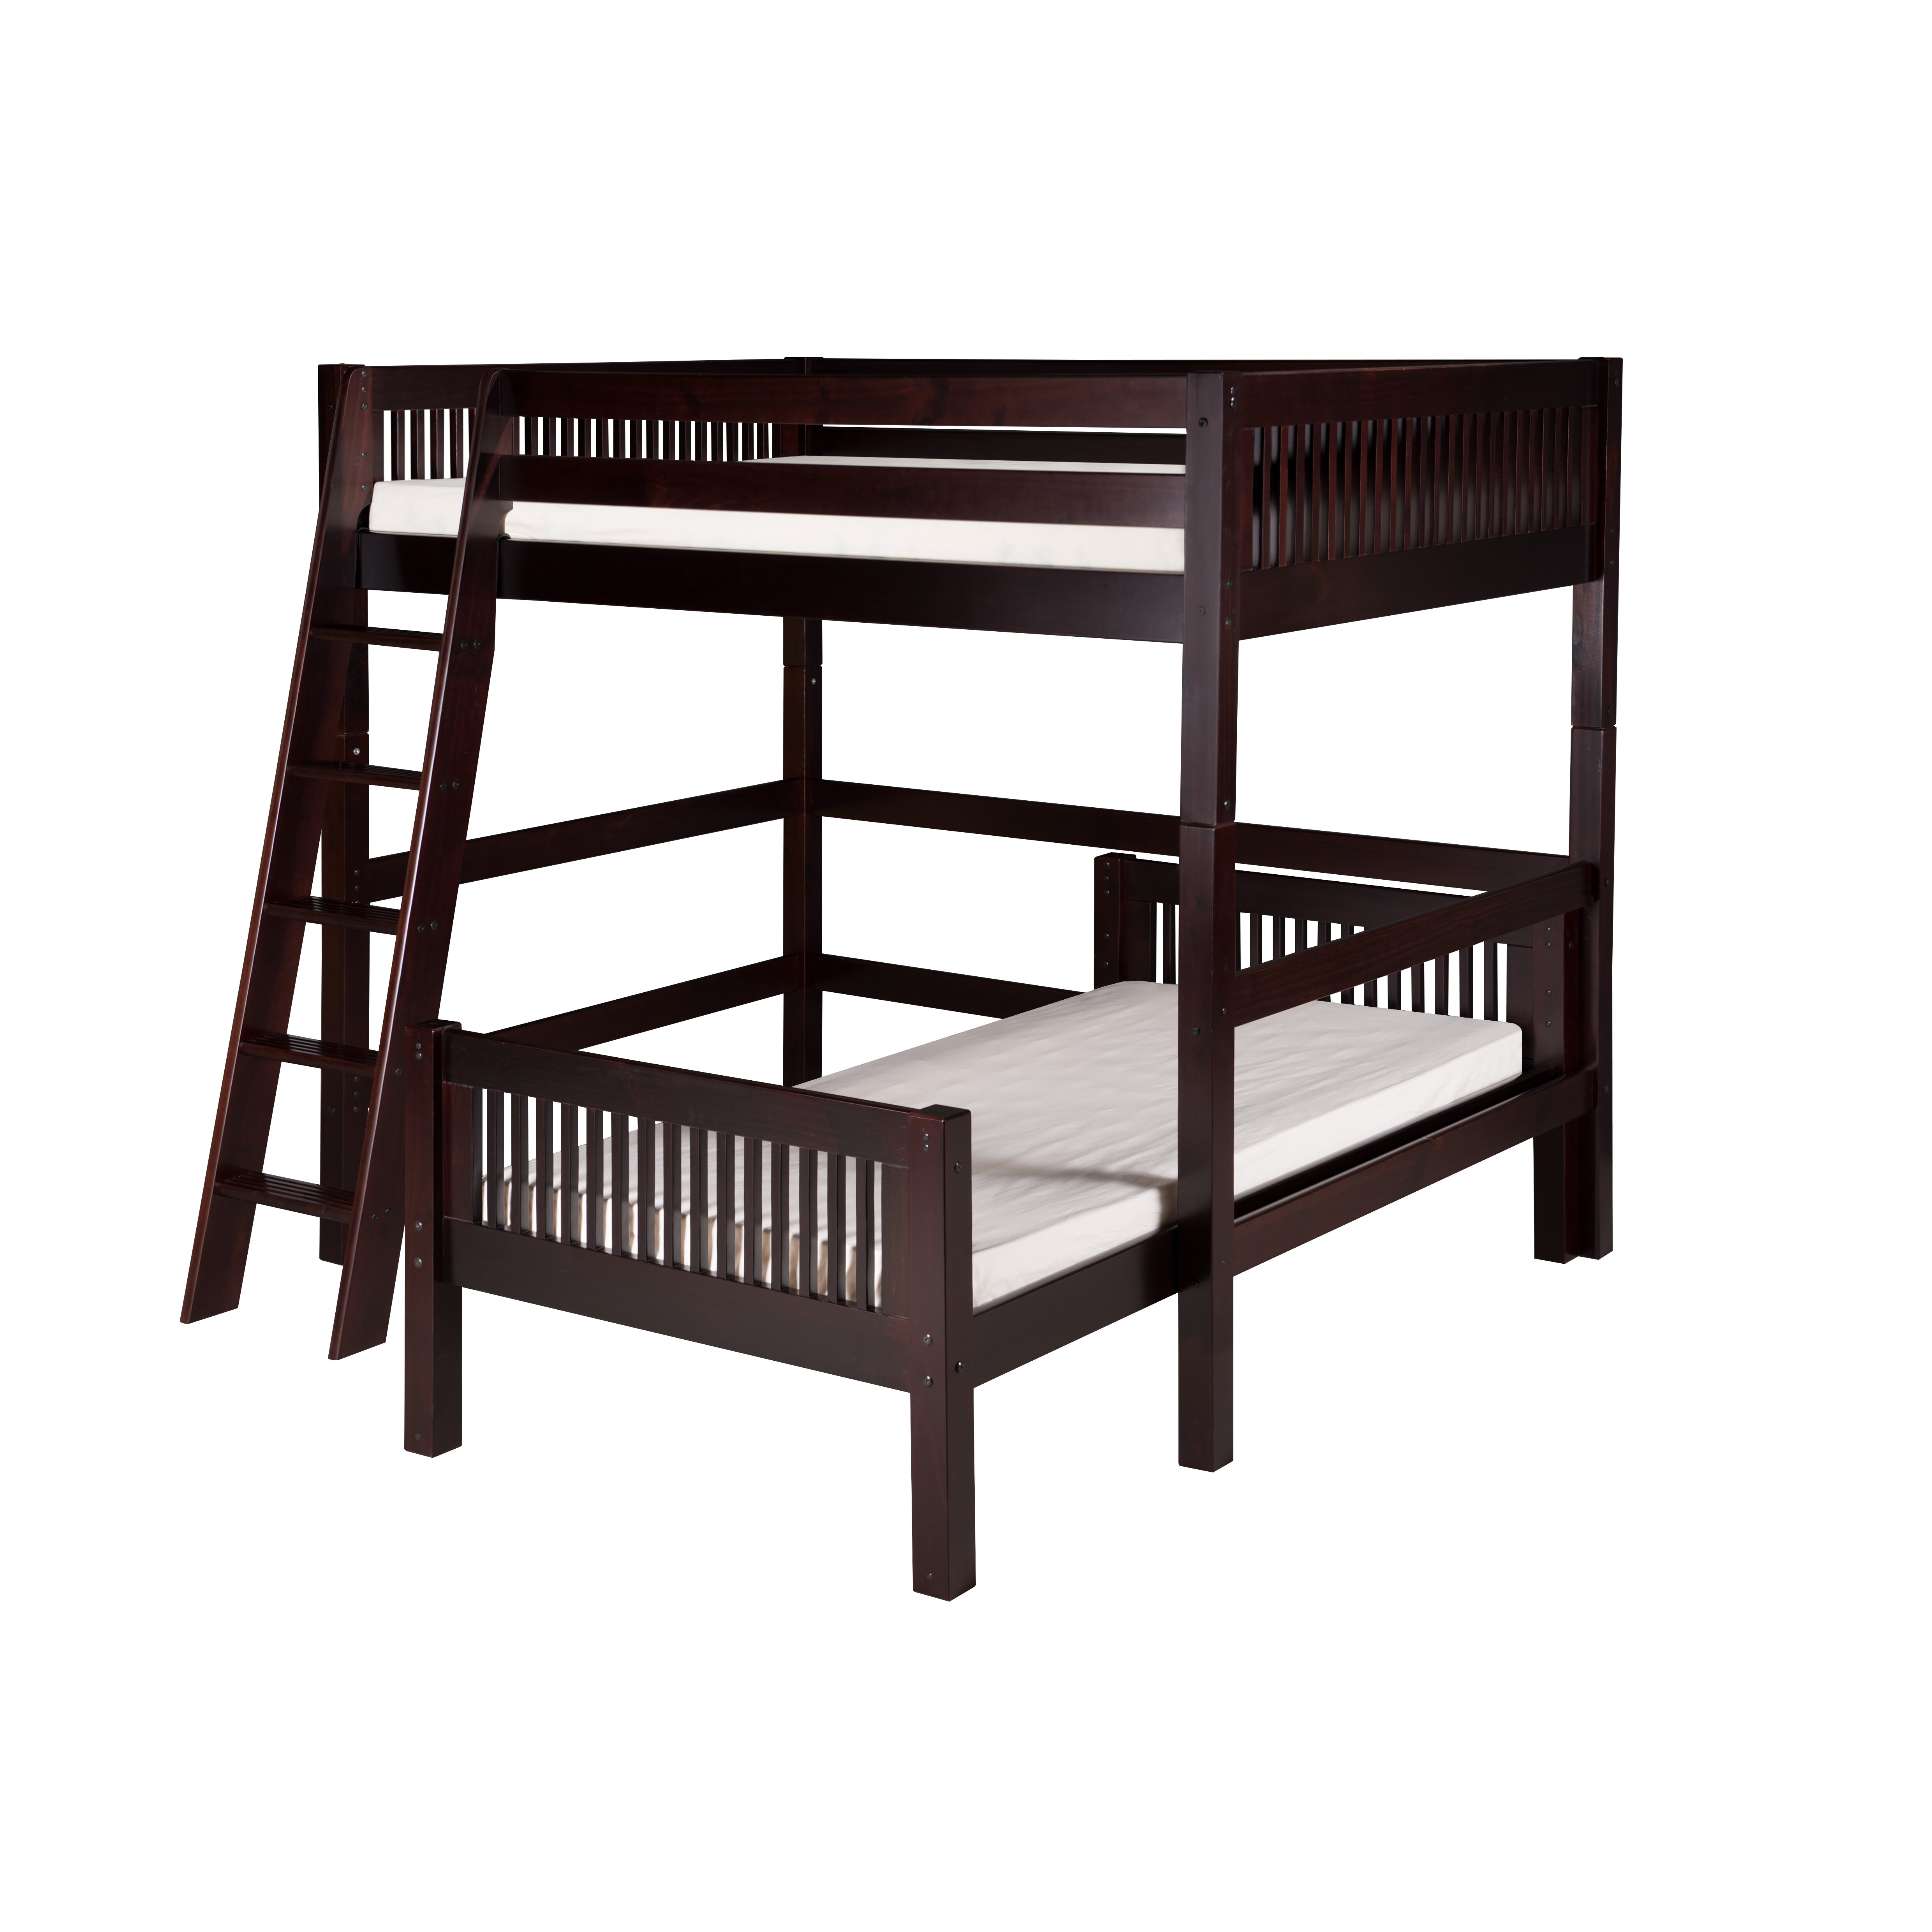 Bunk Beds For Sale In Savannah Ga